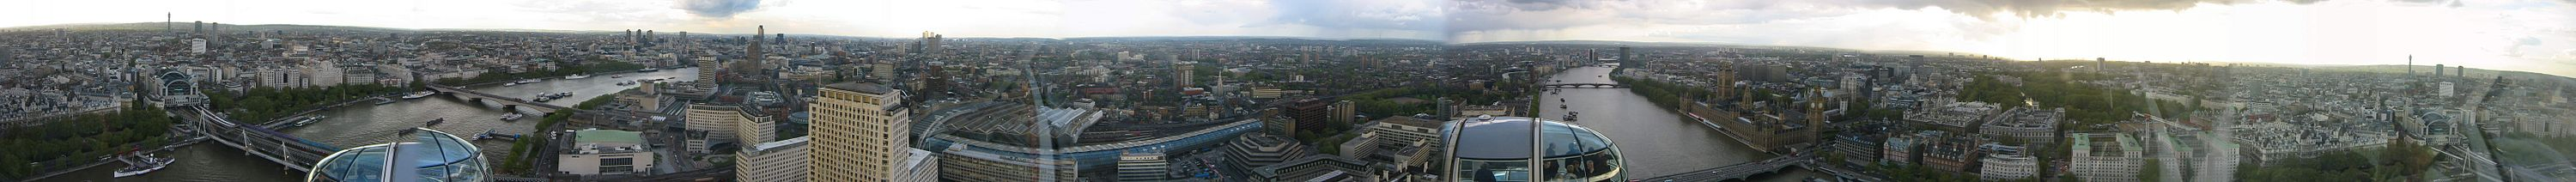 London Eye panorama.jpg